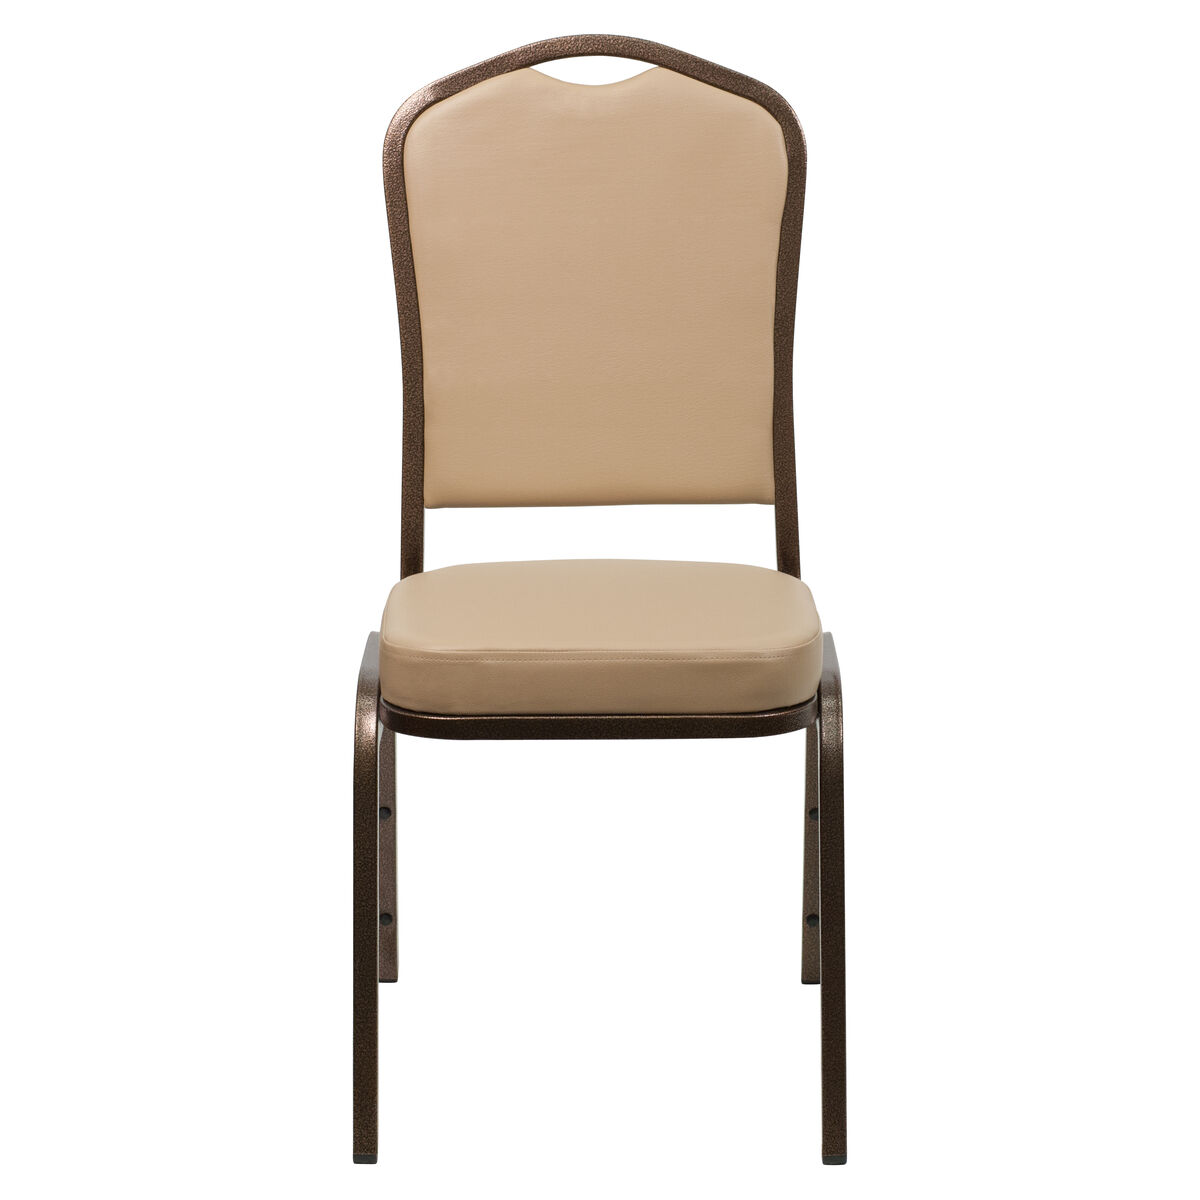 wood banquet chairs. Images Wood Banquet Chairs O